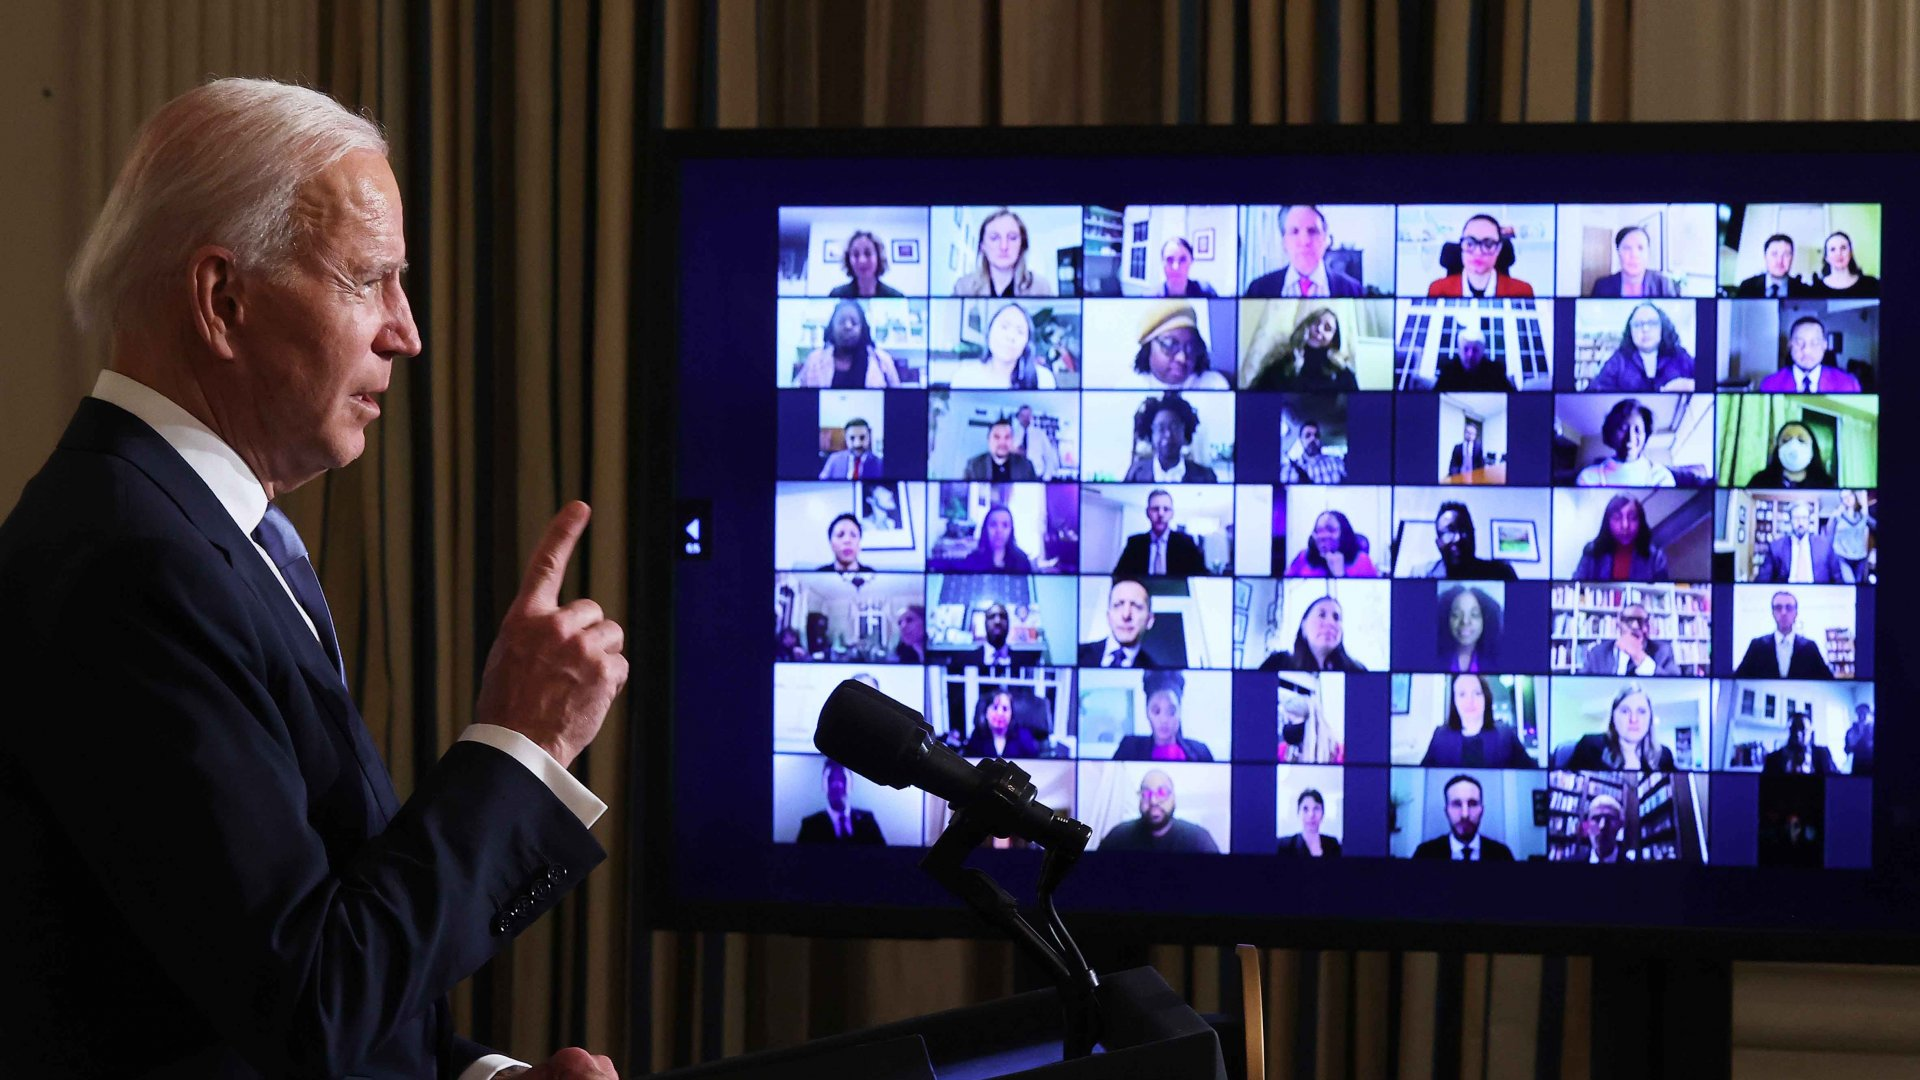 President Joe Biden conducts a virtual swearing-in ceremony for members of his new administration via Zoom just hours after his inauguration in the State Dining Room at the White House, January 20, 2021, in Washington, D.C.